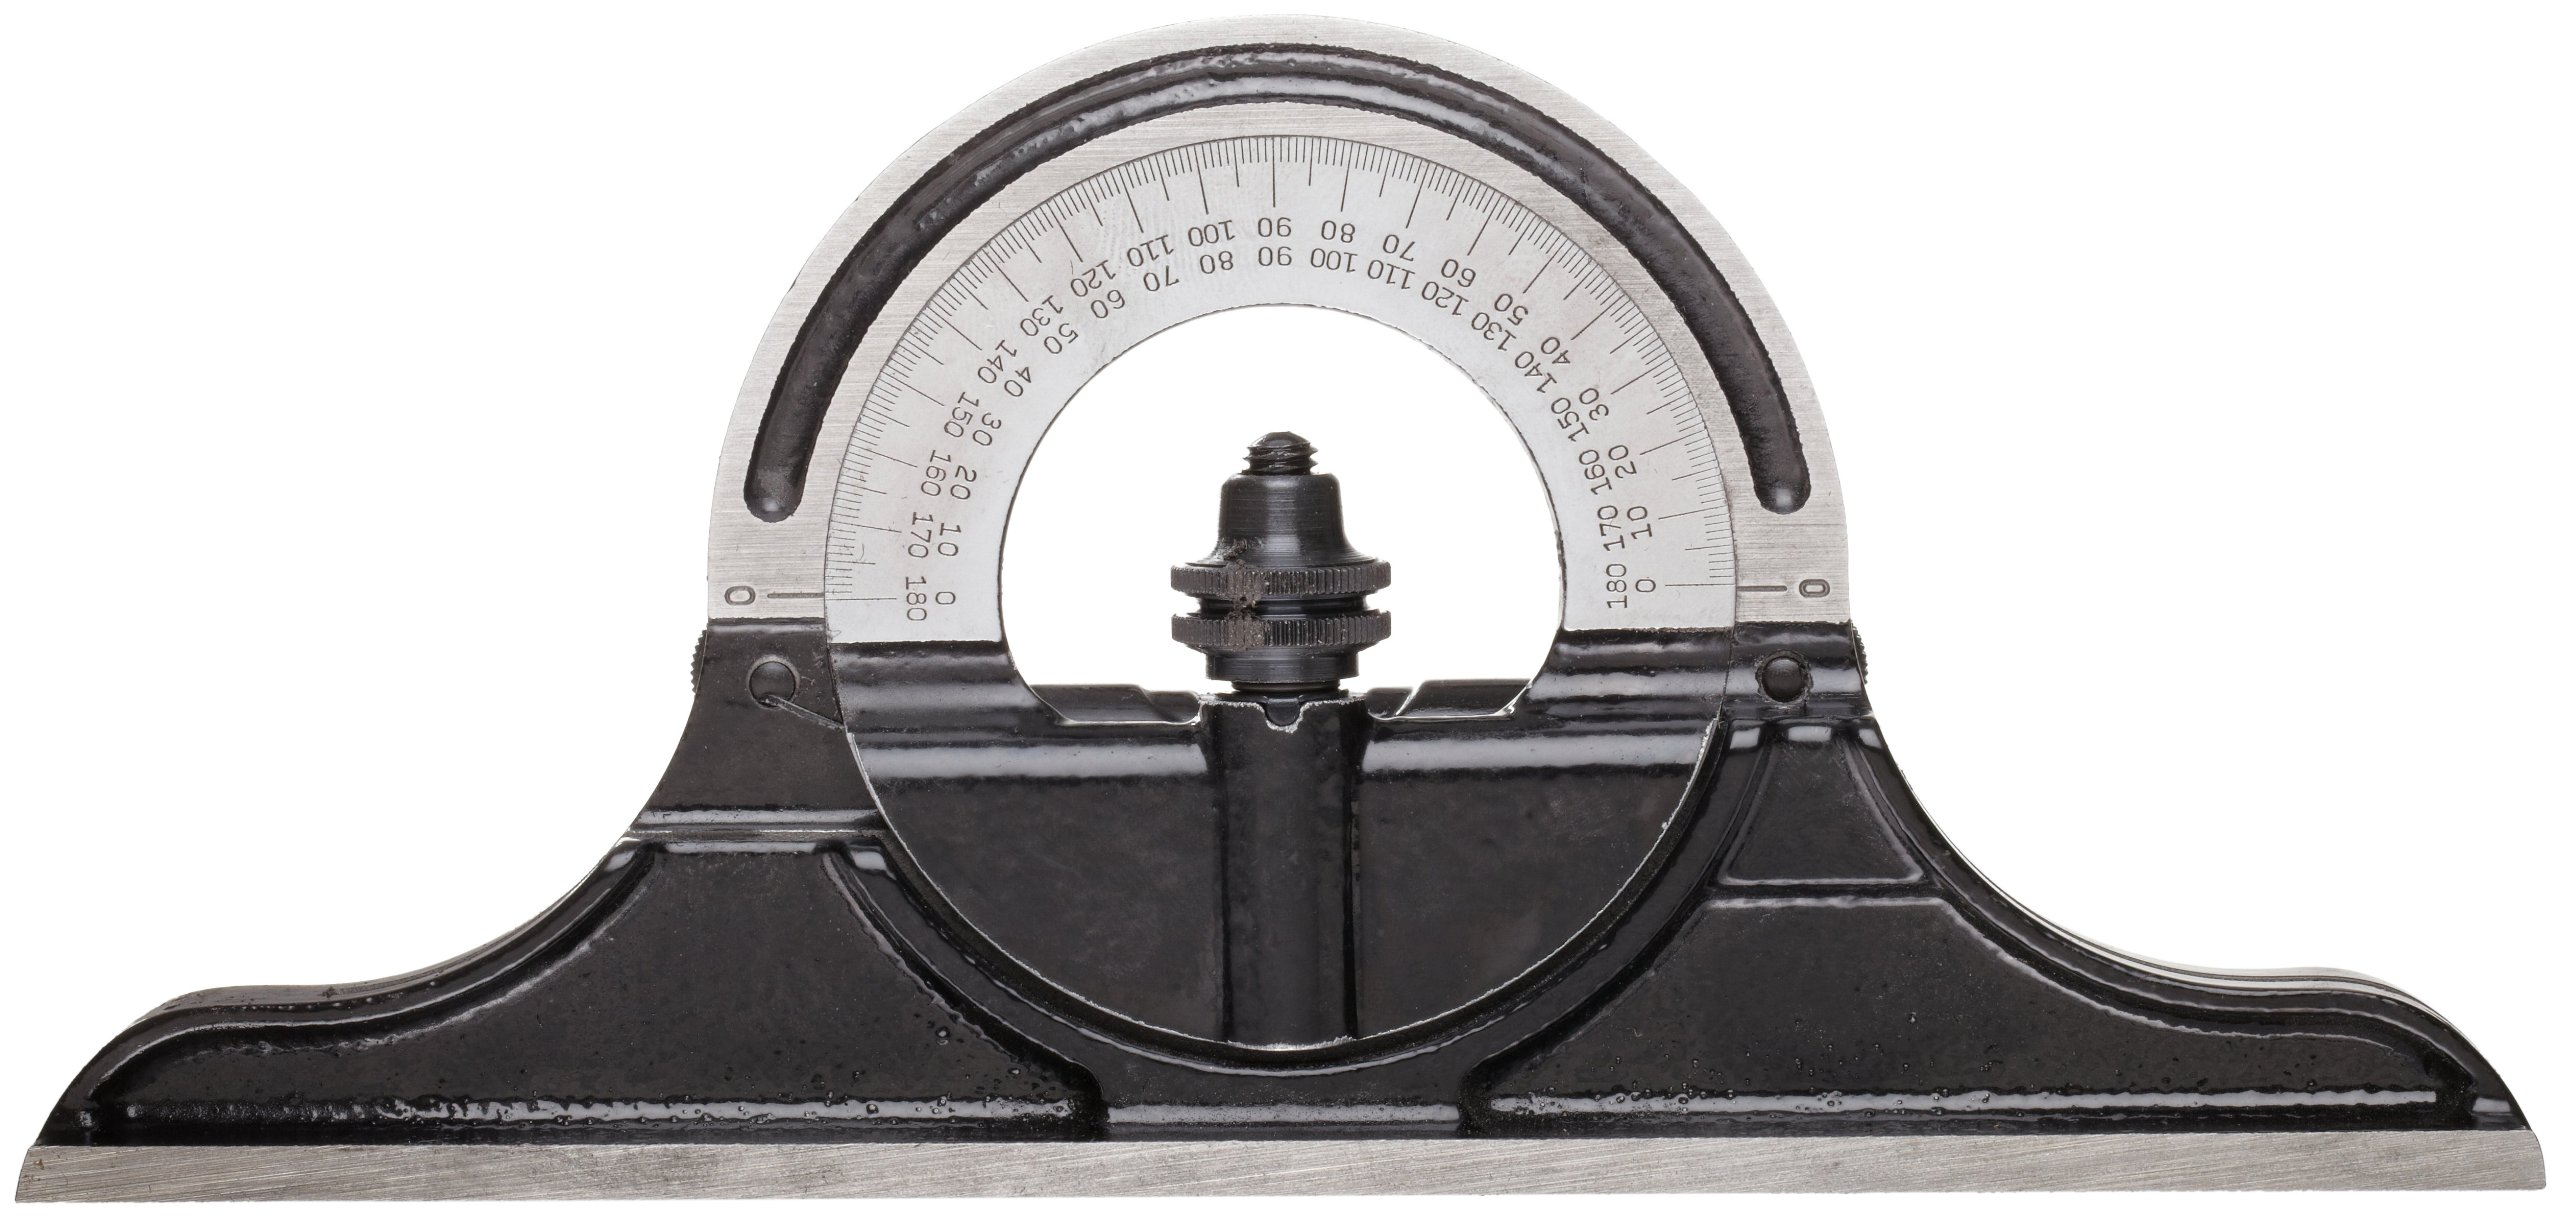 Starrett CPR-1224S Cast Iron Reversible Protractor Head For Combination Squares, Combination Sets And Bevel Protractors by Starrett